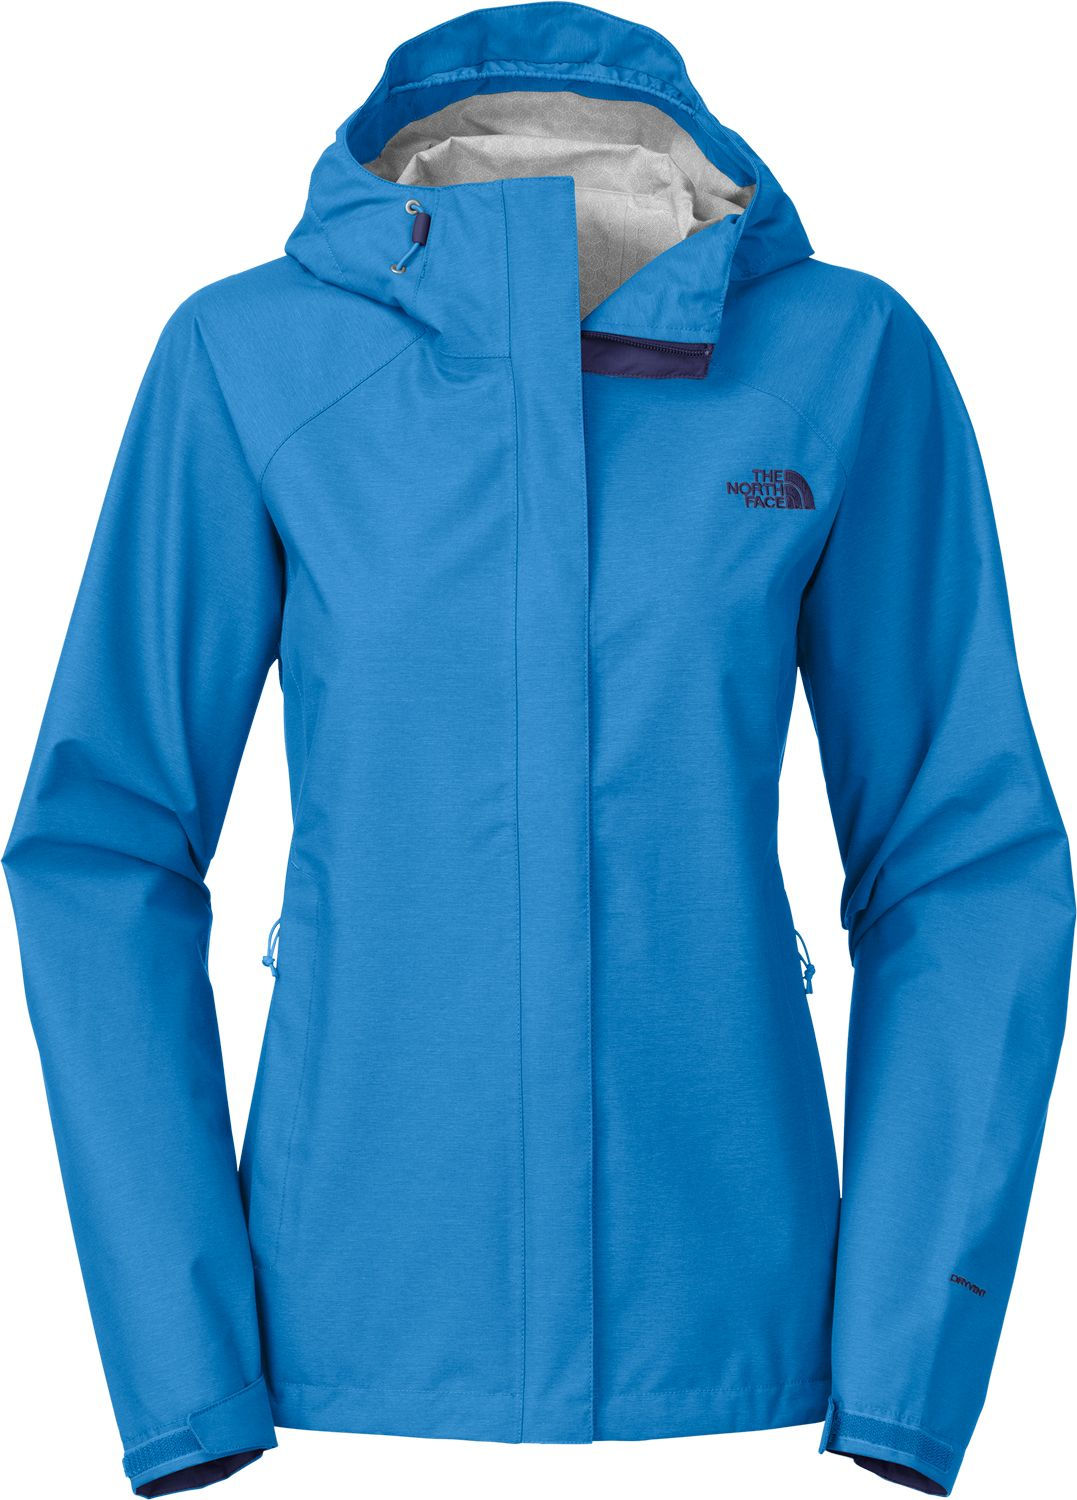 The North Face Women's Venture Rain Jacket| DICK'S Sporting Goods